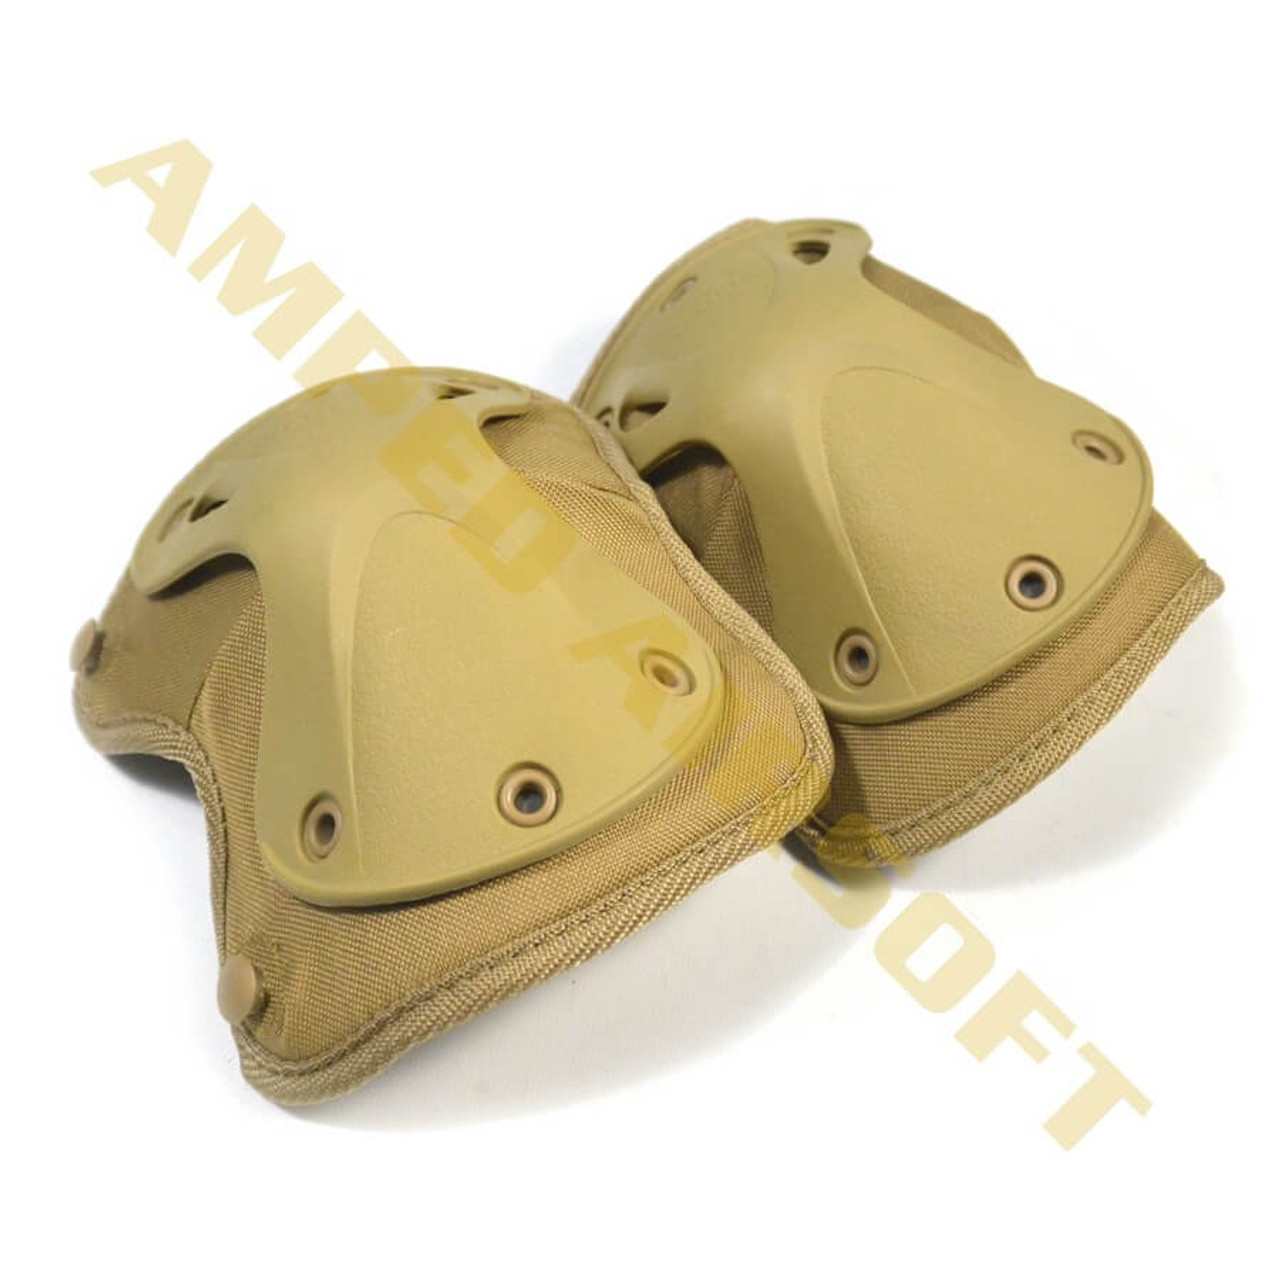 Hatch - XTAK Knee Pads (Coyote Tan)